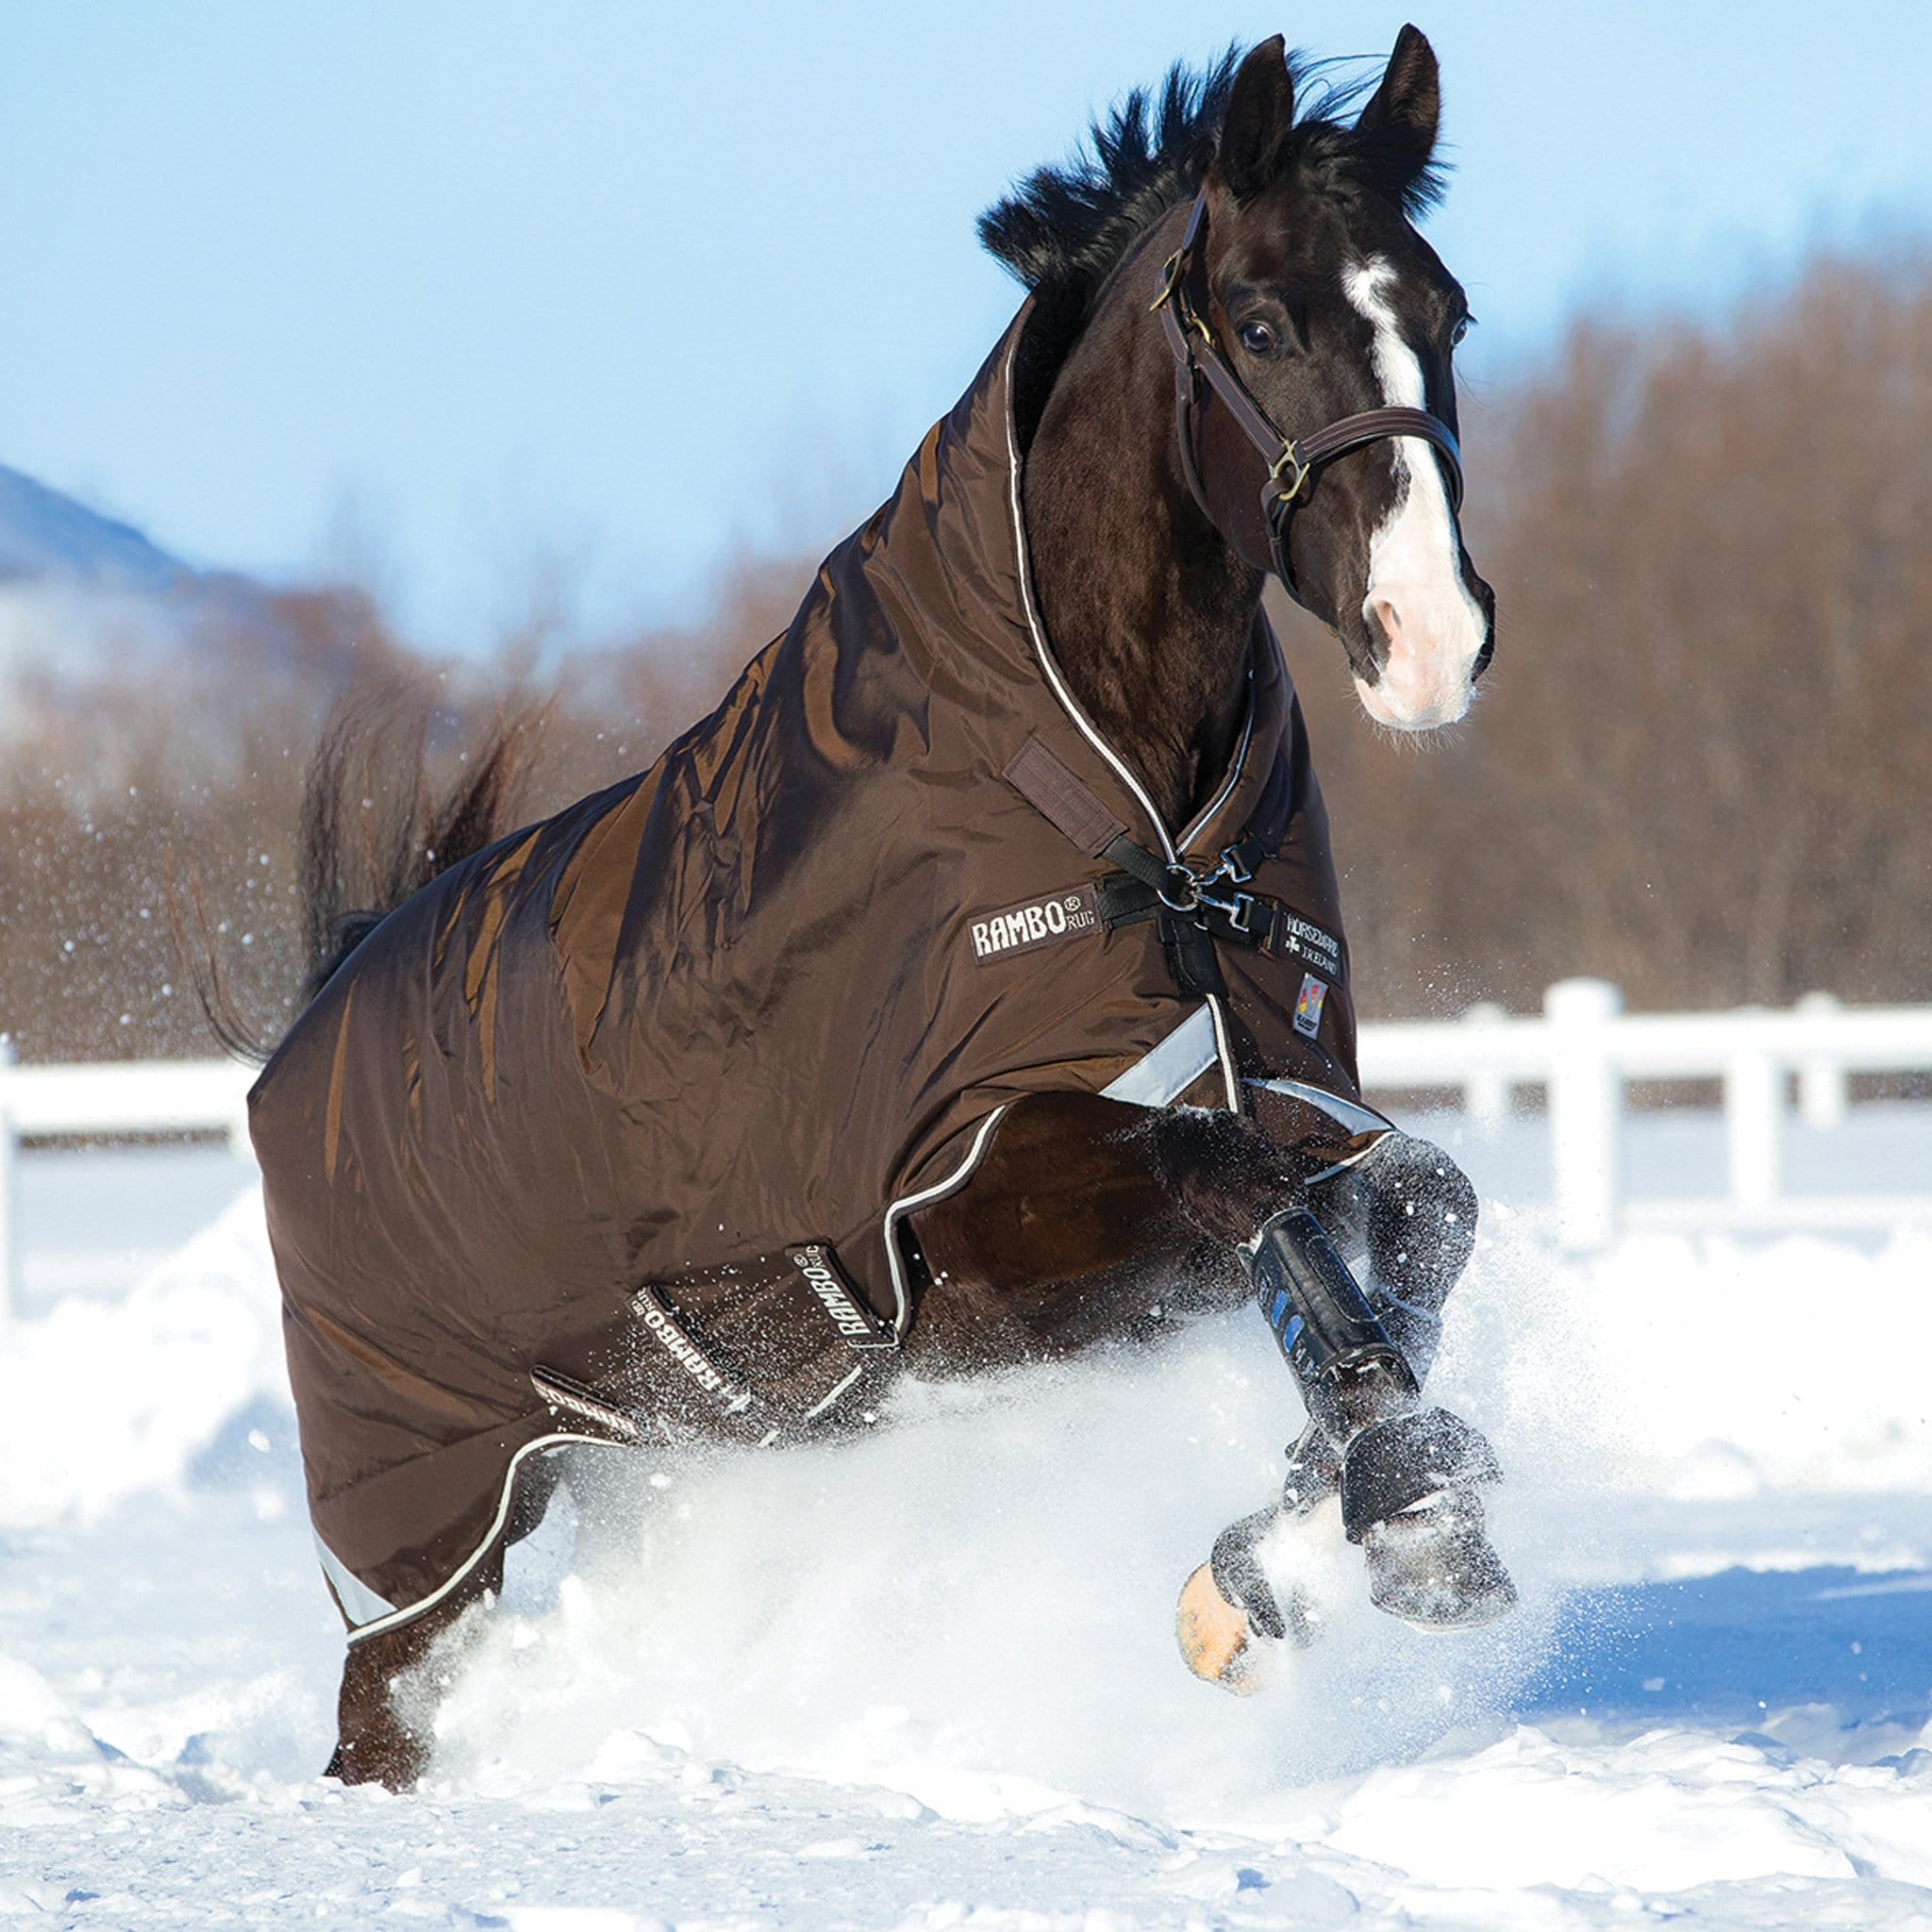 Rambo Wug with Vari-Layer Heavyweight 450g Standard Neck Turnout Rug AAAV33 Chocolate And Cream On Bay Horse In Snow.